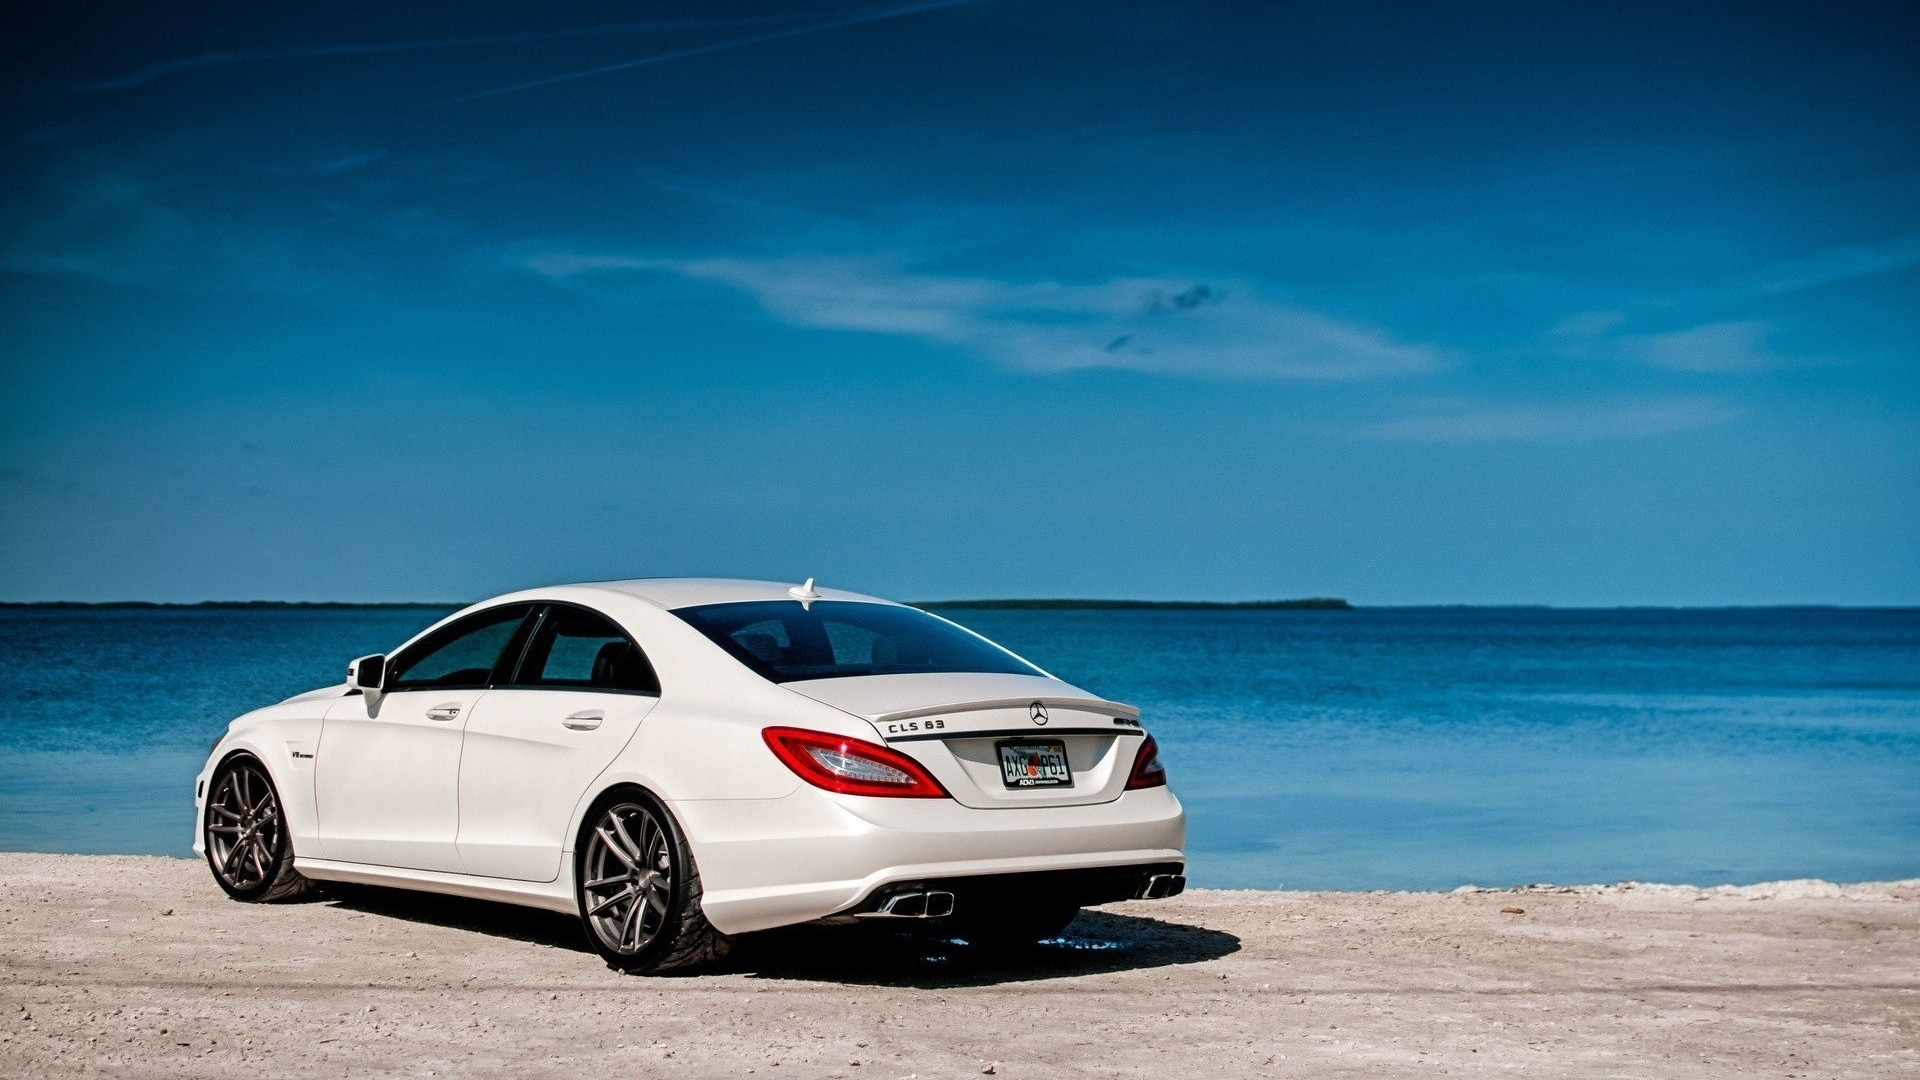 Mercedes cls 63 amg wallpaper 770238 for White mercedes benz truck